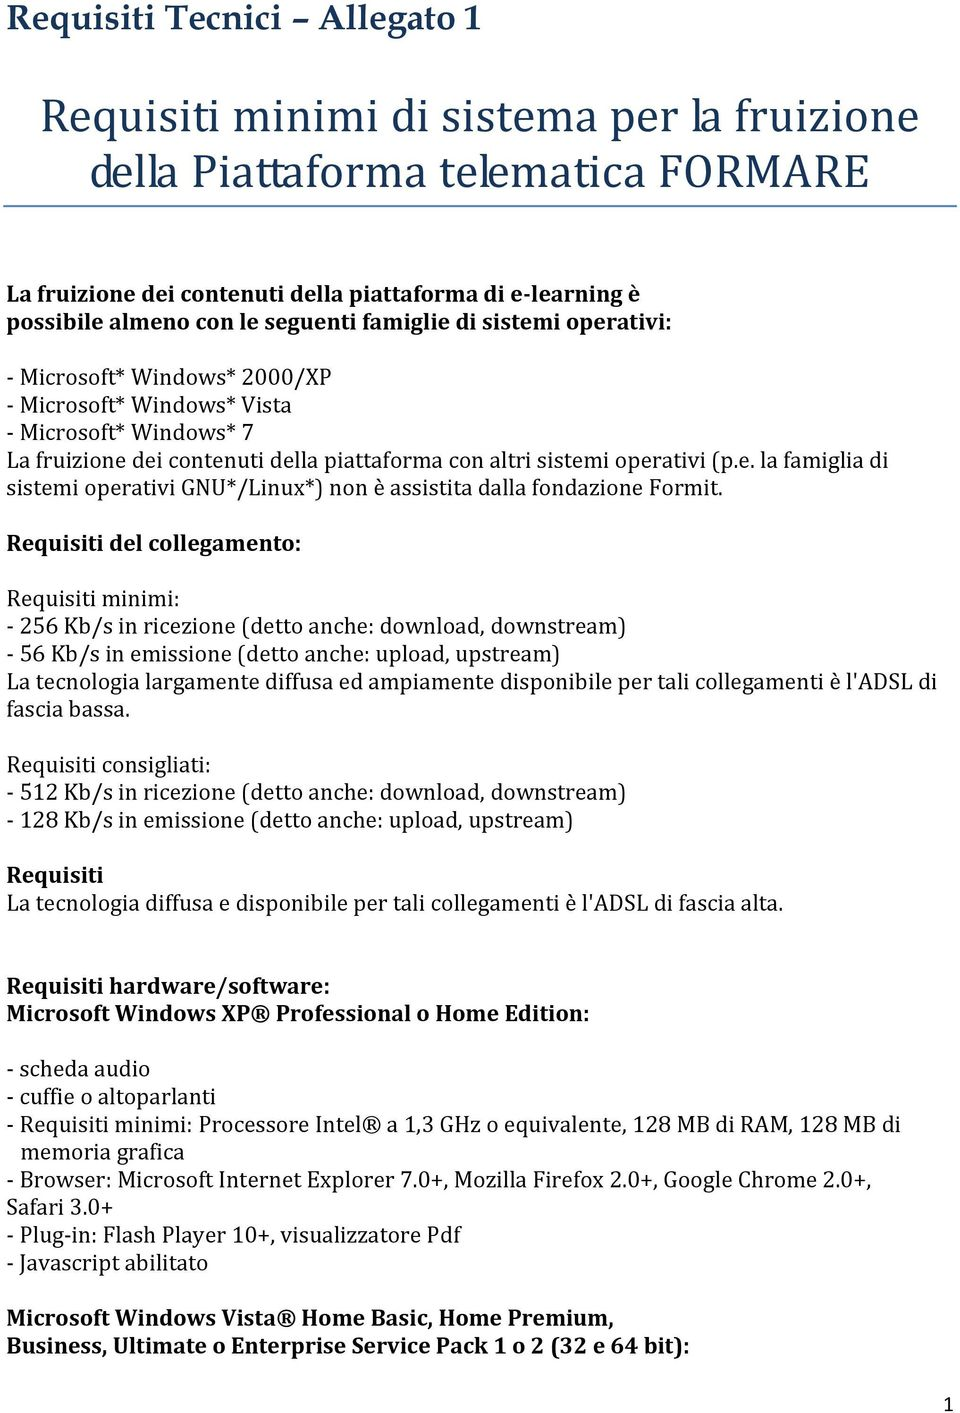 Requisiti del collegamento: Requisiti minimi: - 256 Kb/s in ricezione (detto anche: download, downstream) - 56 Kb/s in emissione (detto anche: upload, upstream) La tecnologia largamente diffusa ed